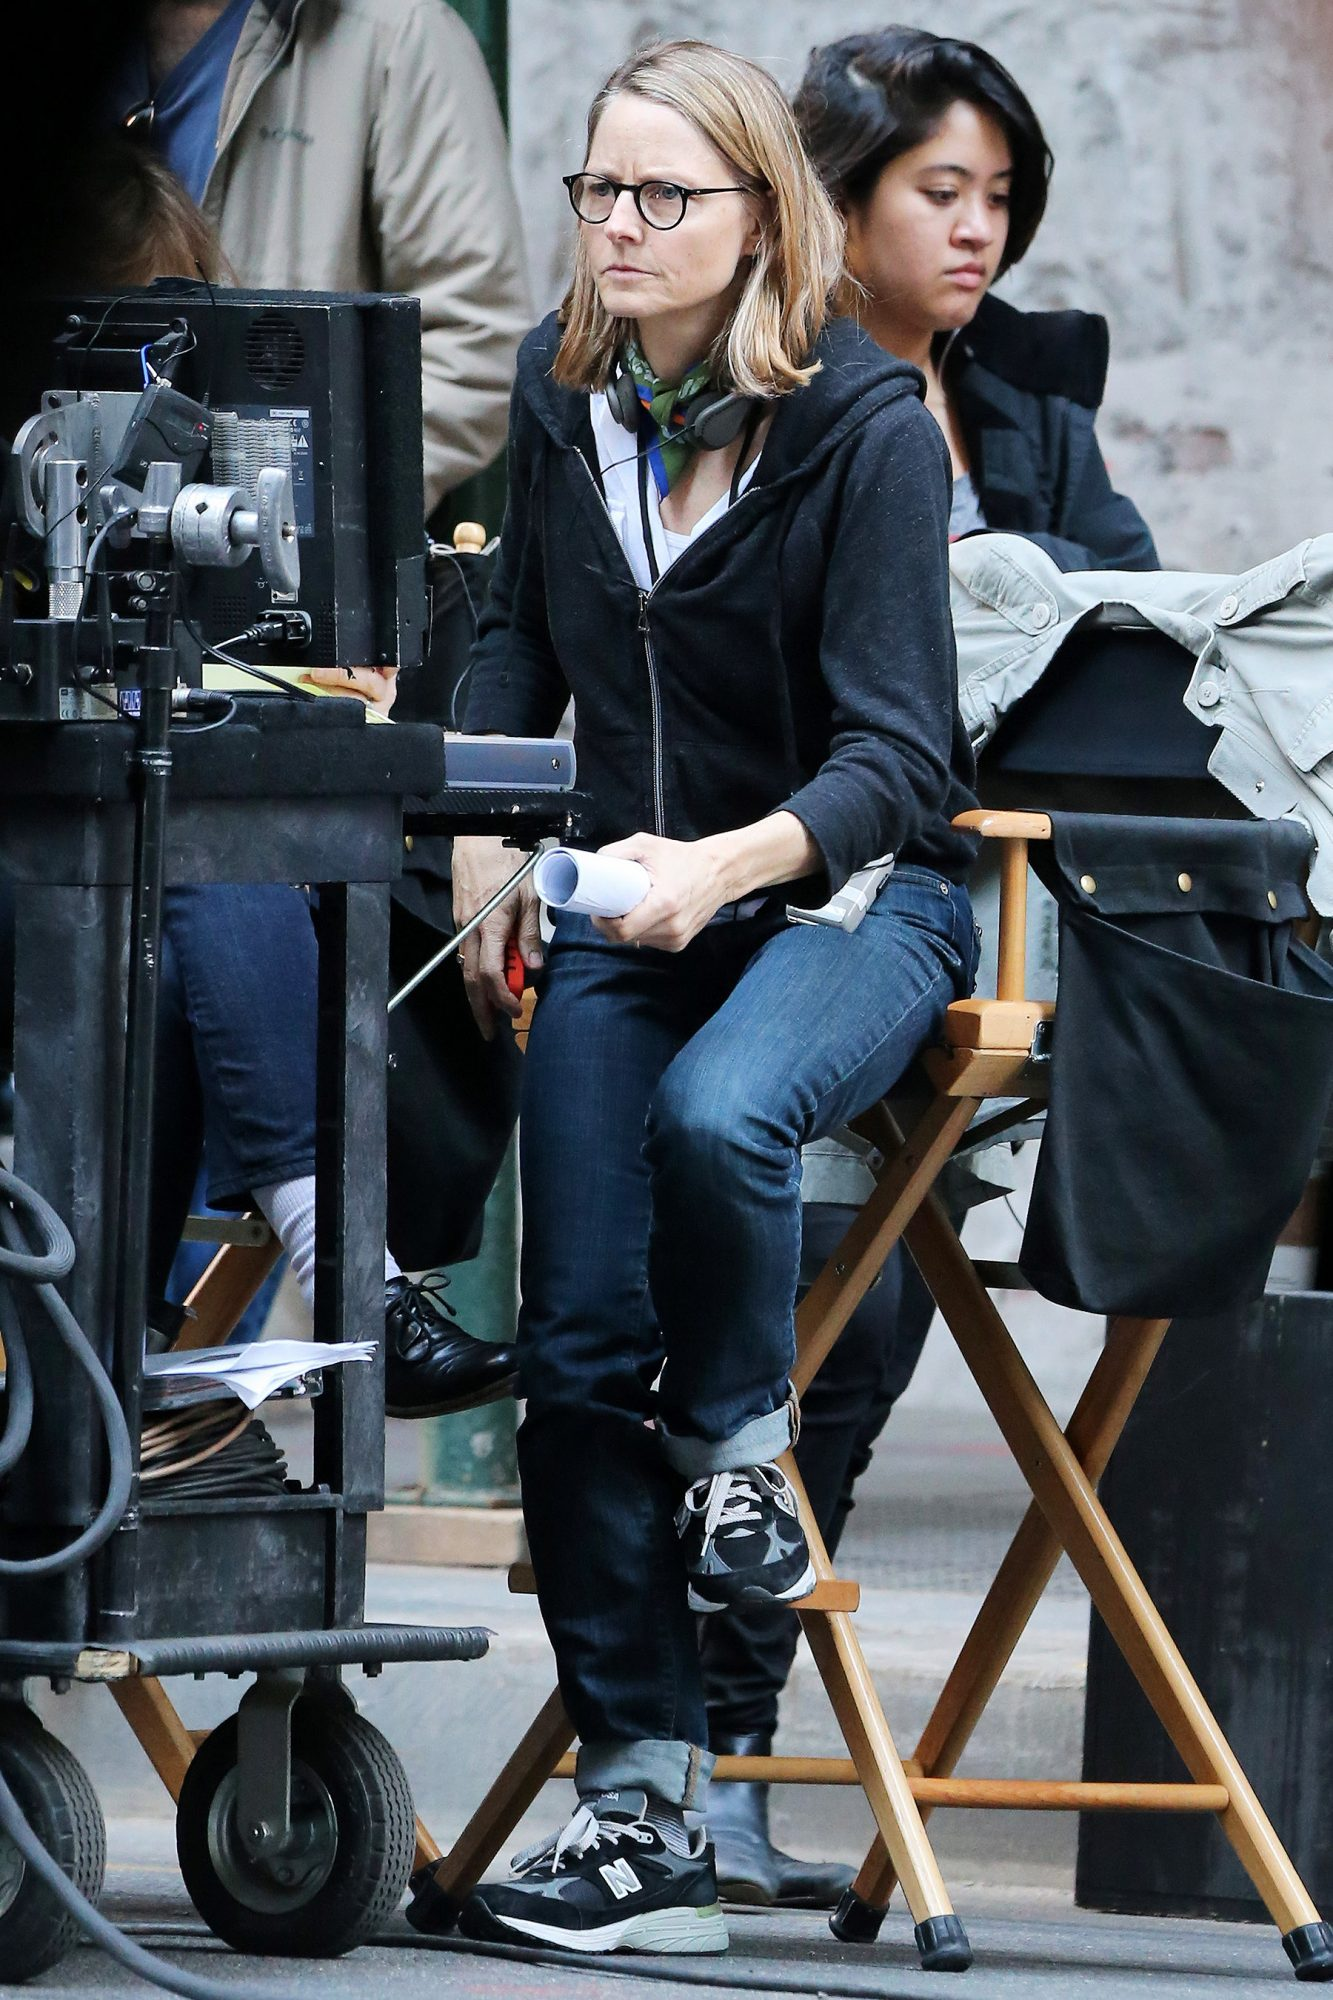 Director Jodie Foster sets up a shot with cinematographer Matthew Libatique on the set of 'Money Monster' on April 18, 2015 in New York City